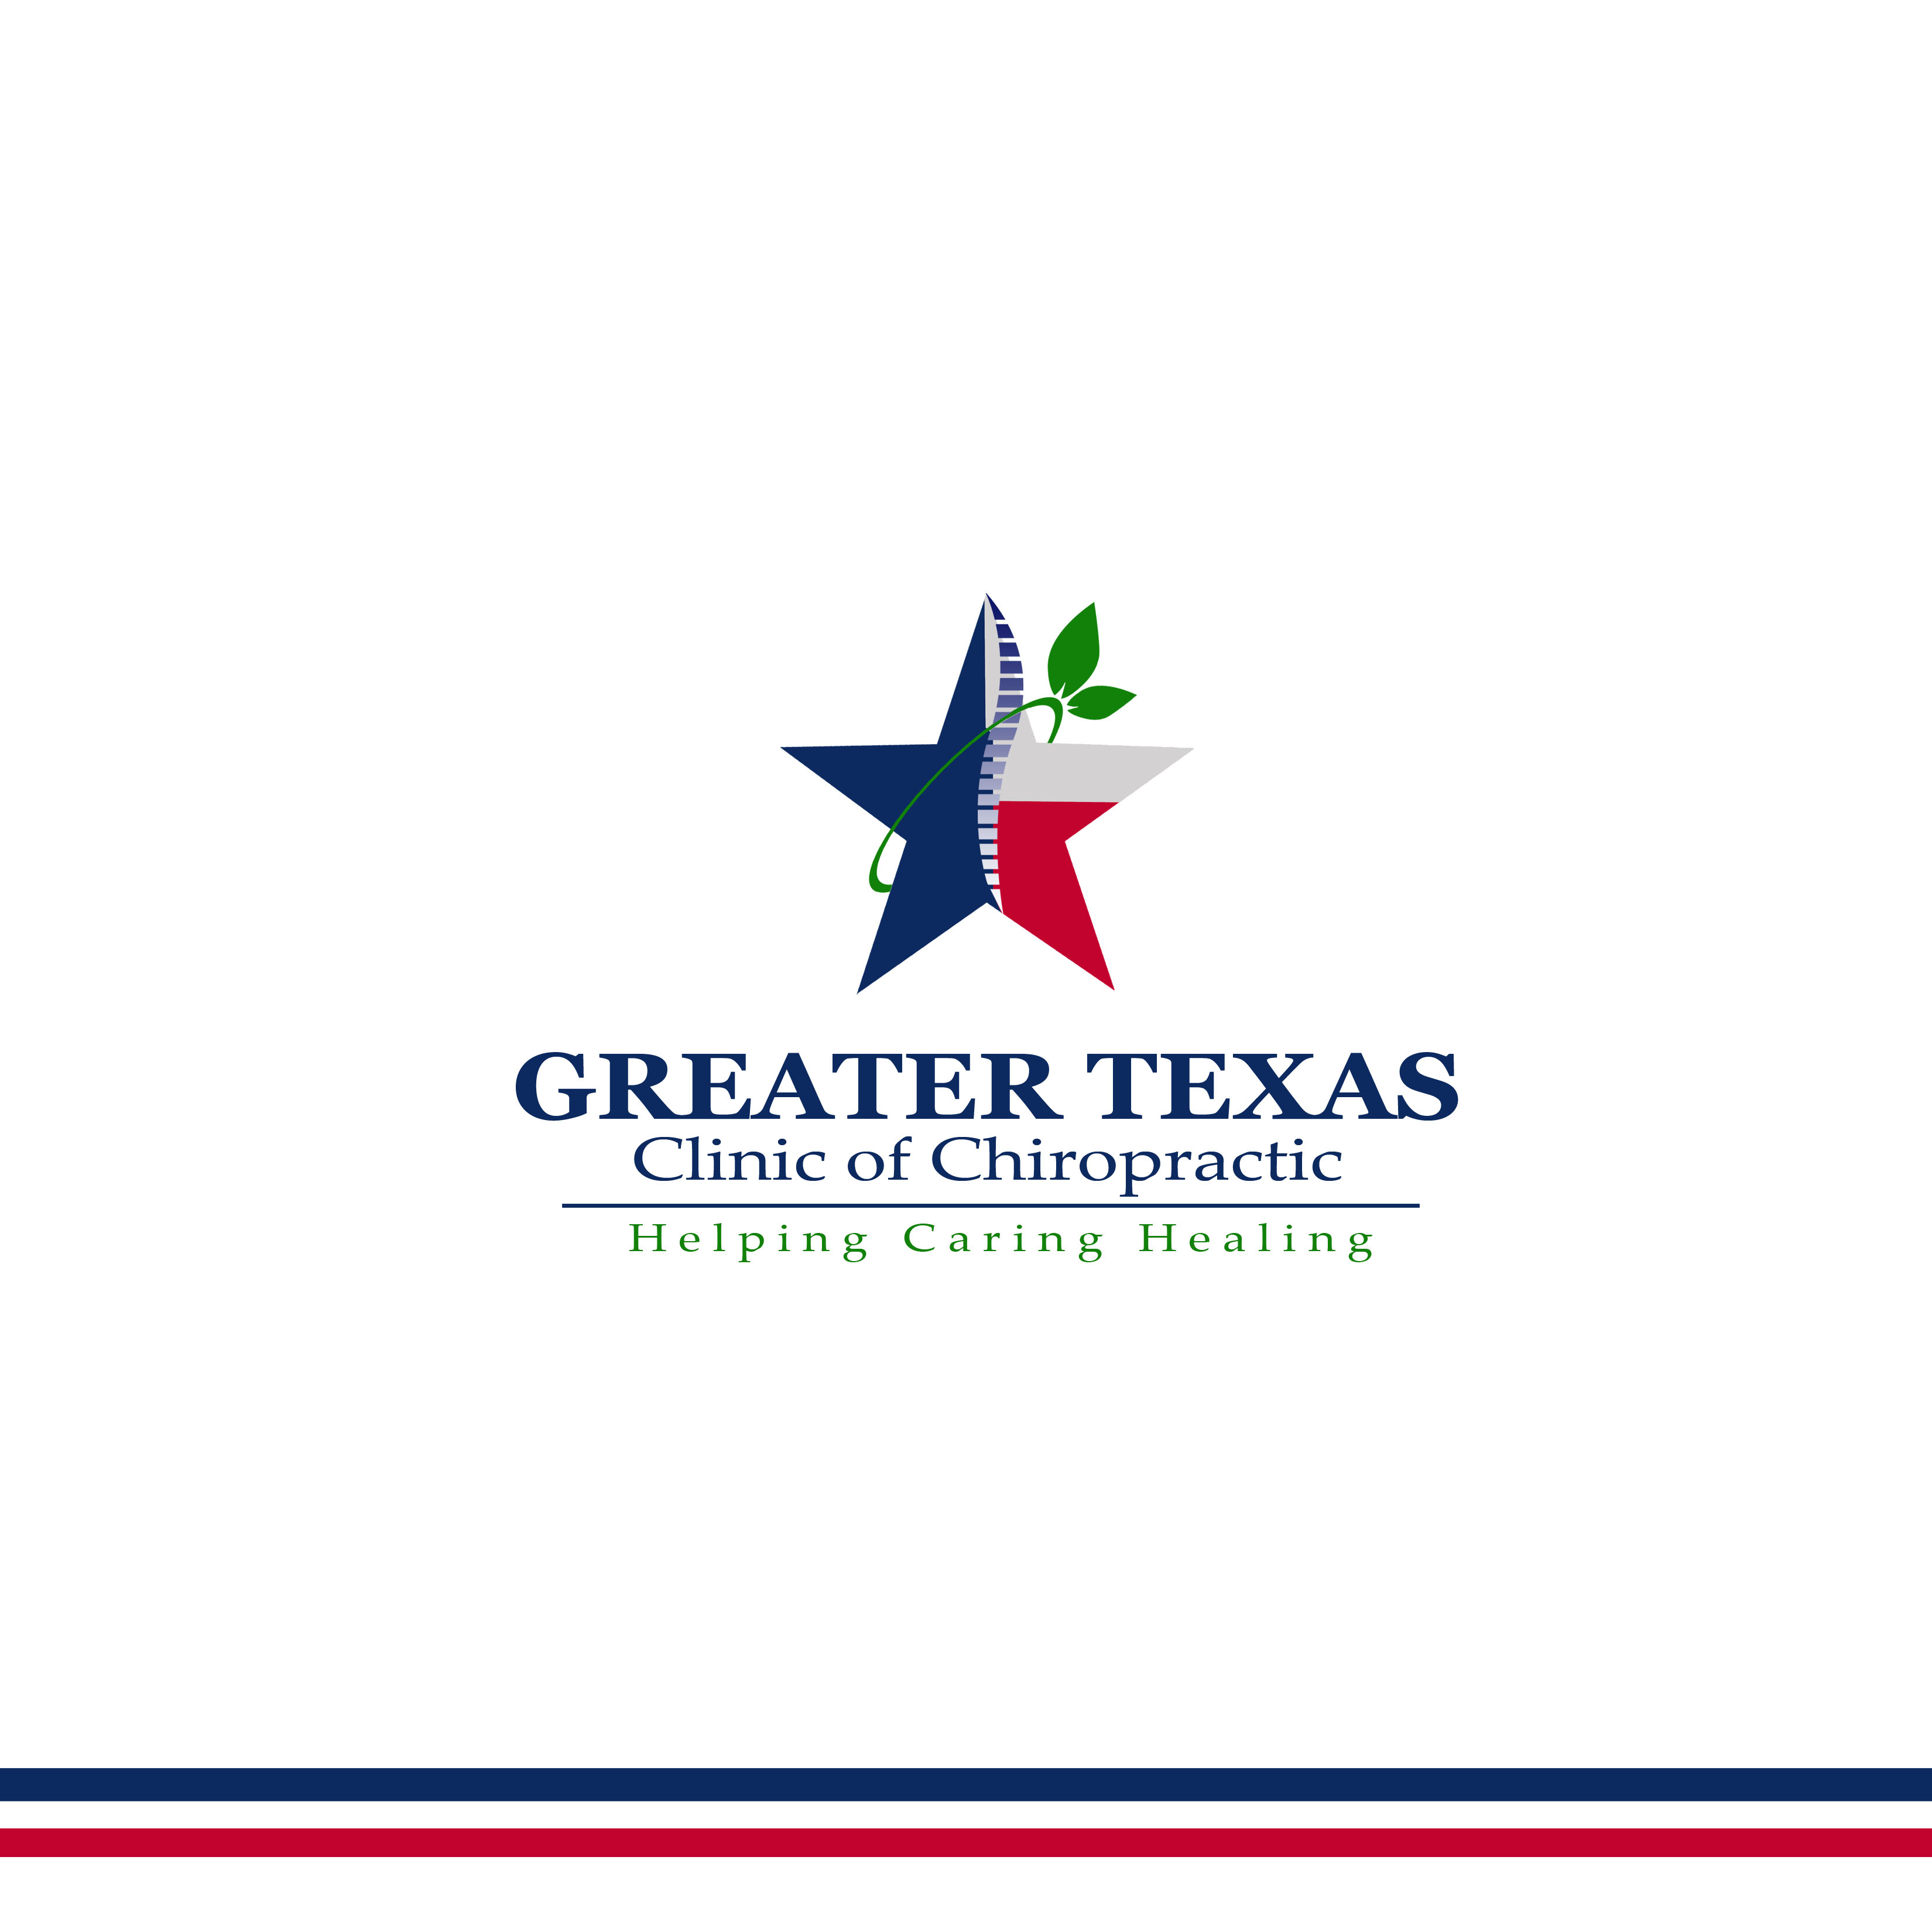 Logo Design by Allan Esclamado - Entry No. 28 in the Logo Design Contest New Logo Design for Greater Texas Clinic of Chiropractic.